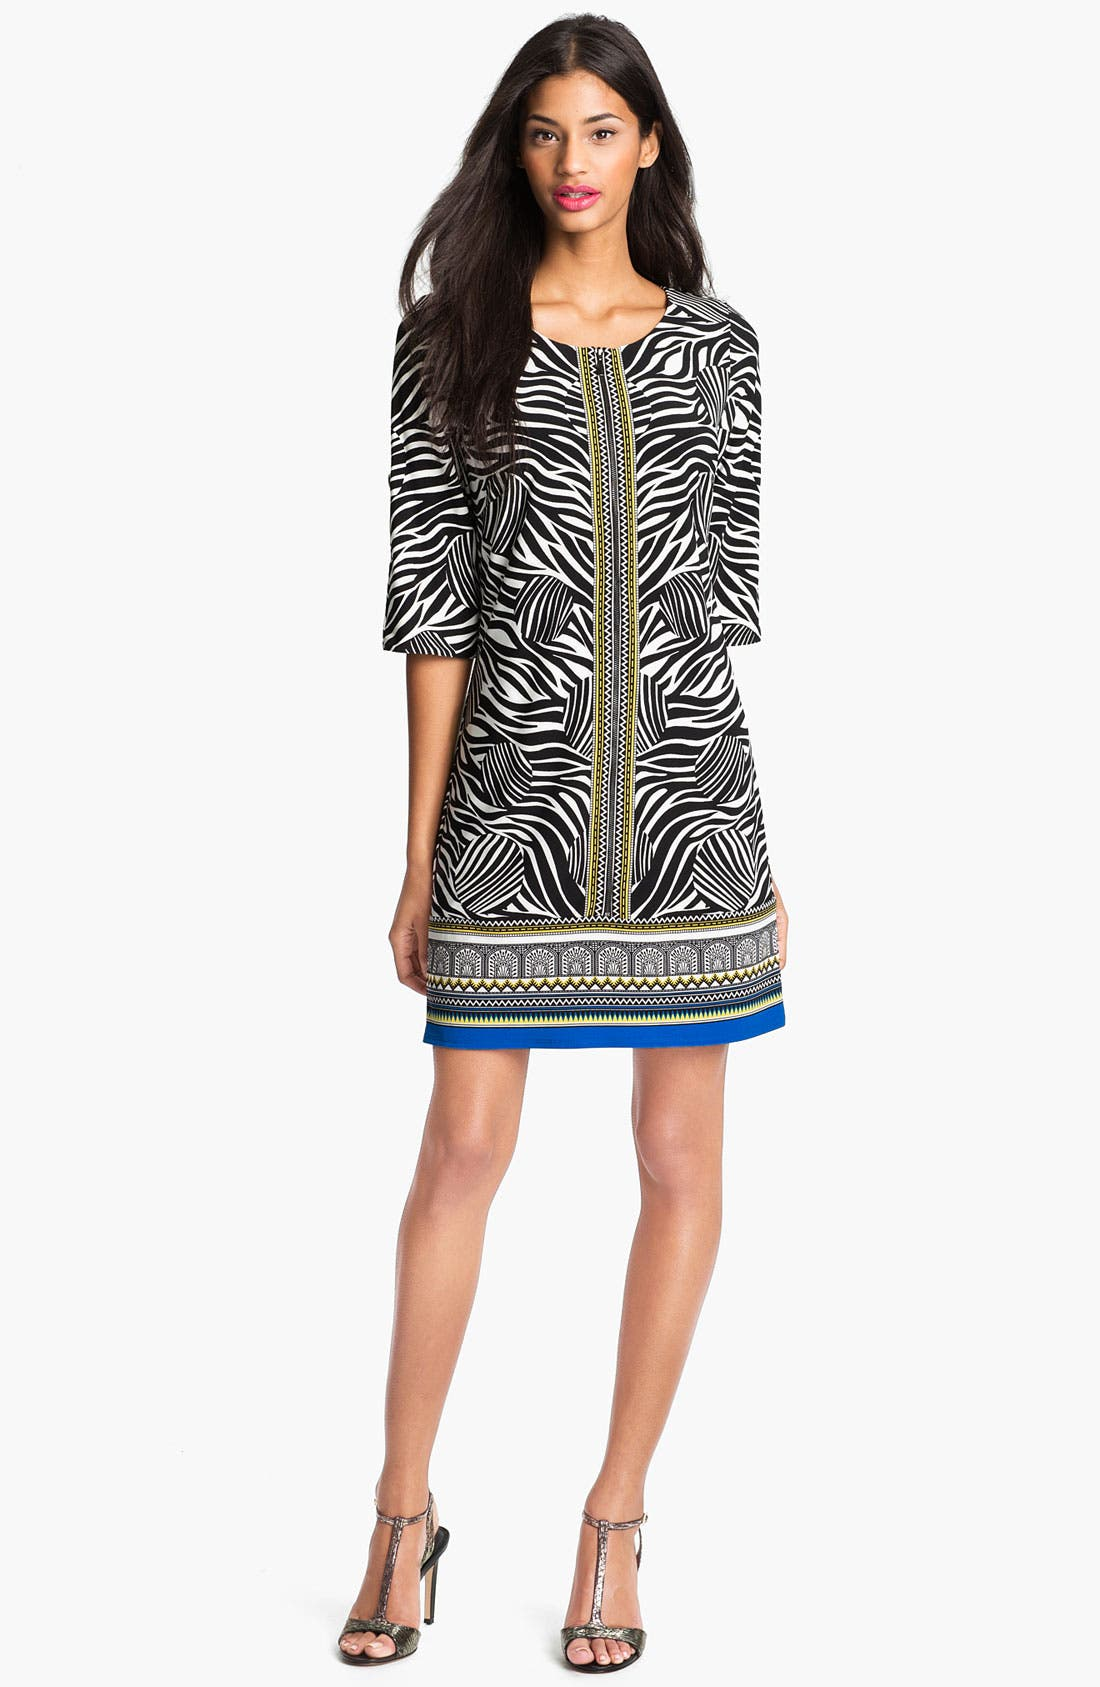 Alternate Image 1 Selected - Laundry by Shelli Segal Print Jersey Dress (Petite)